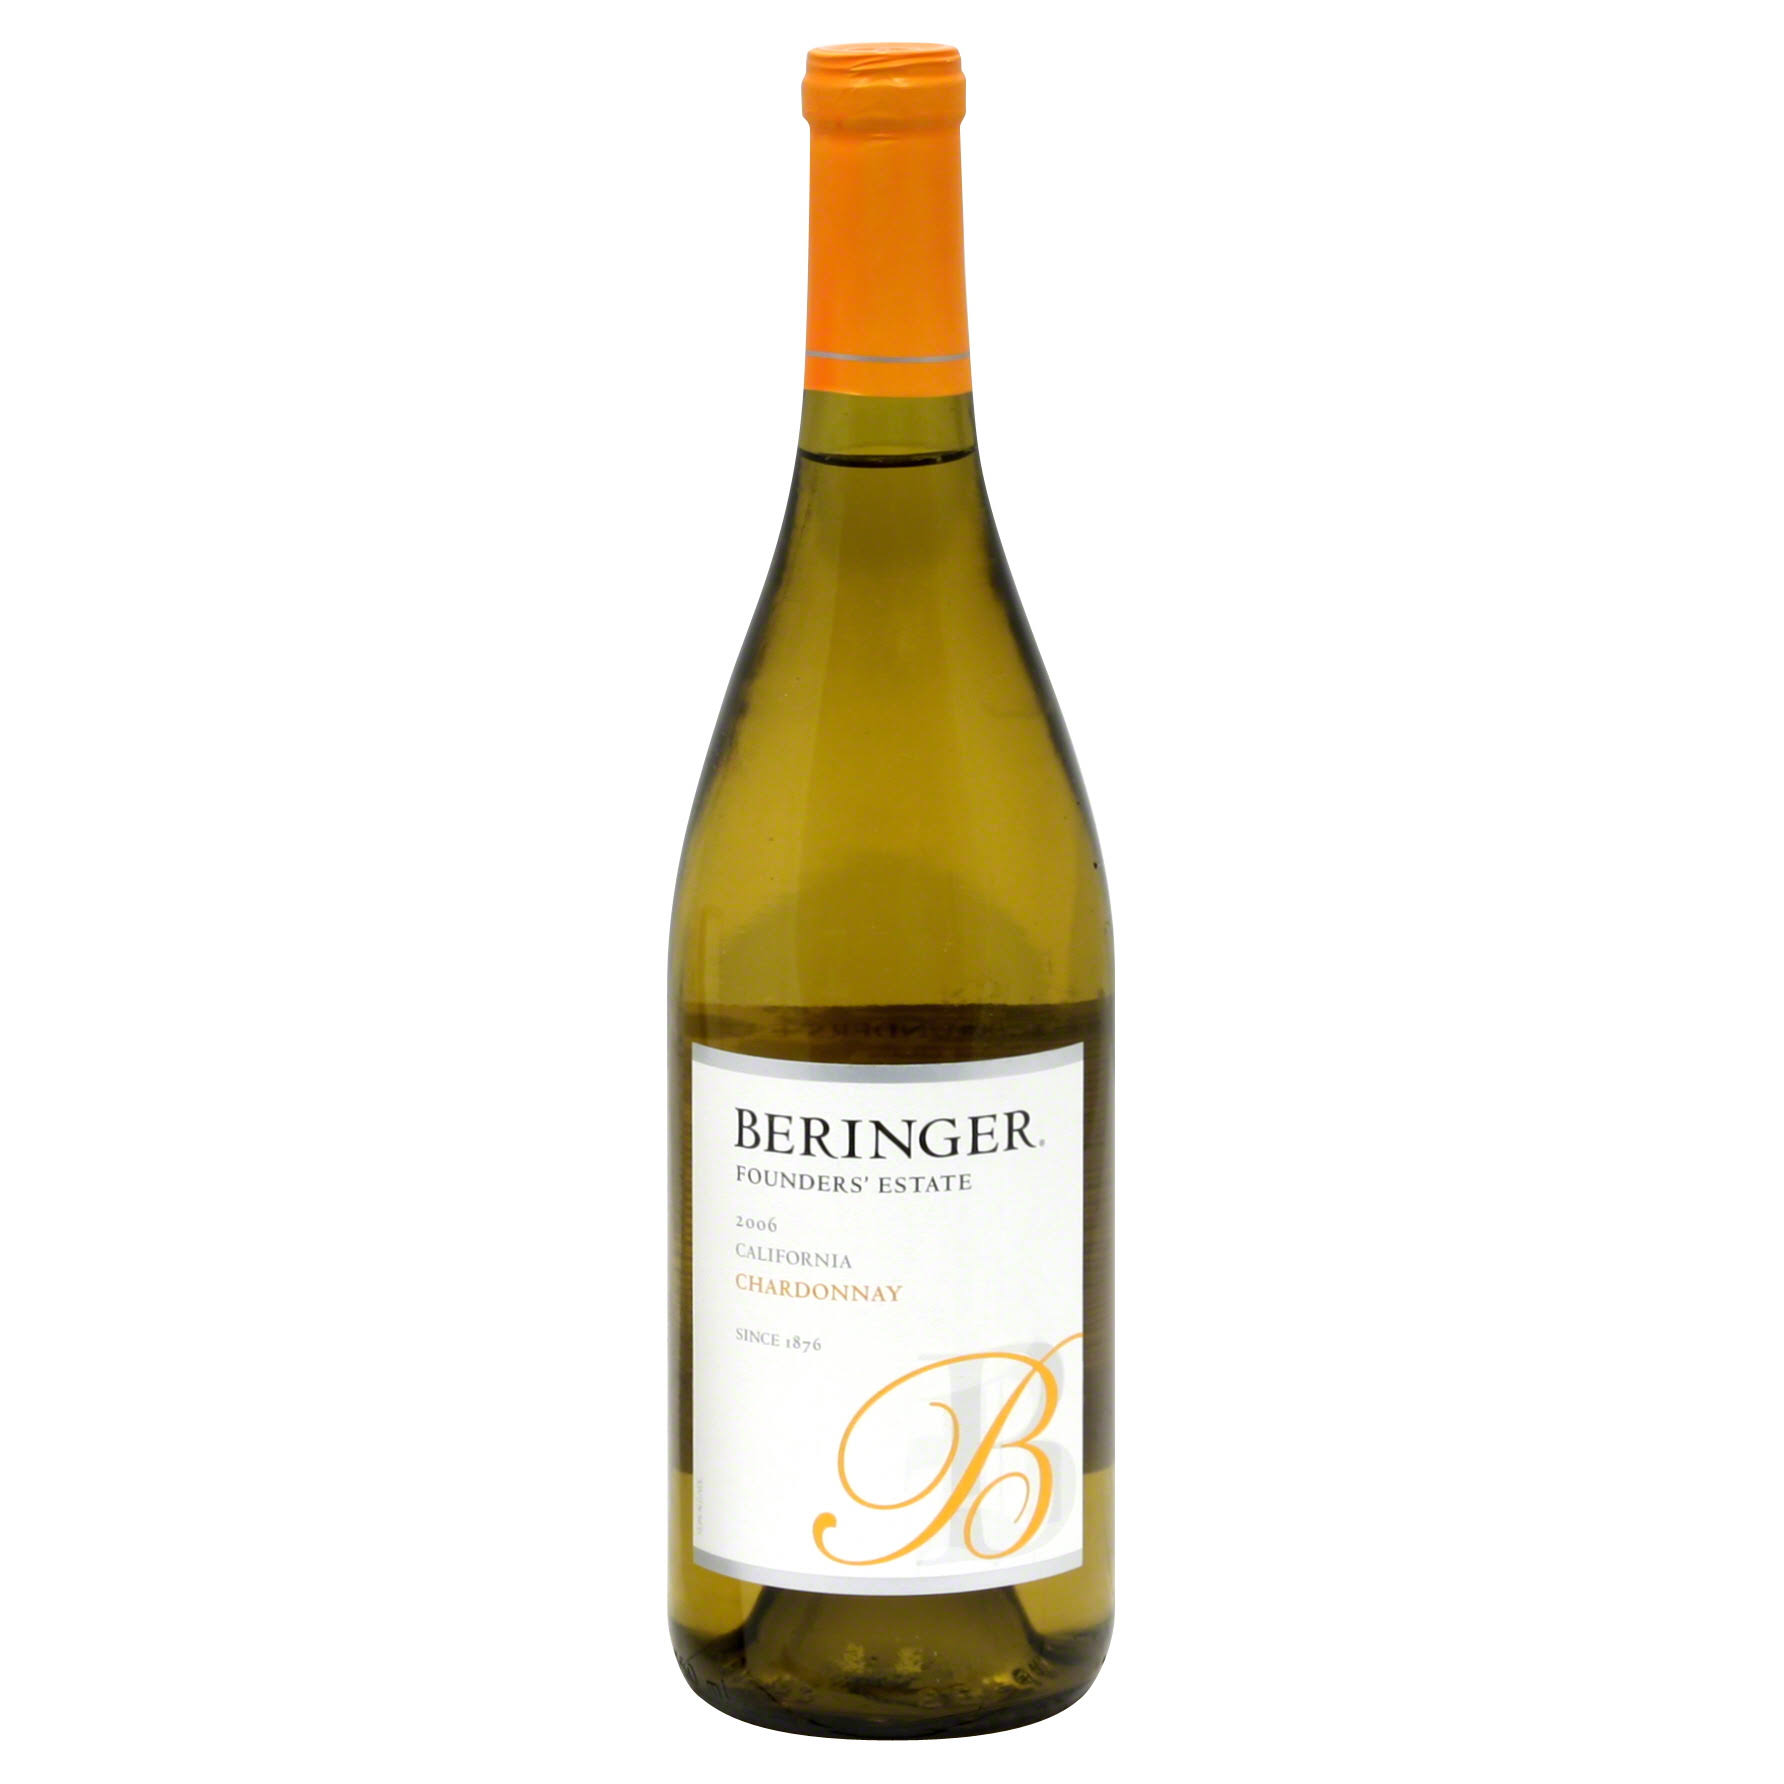 Beringer Founders' Estate Chardonnay California